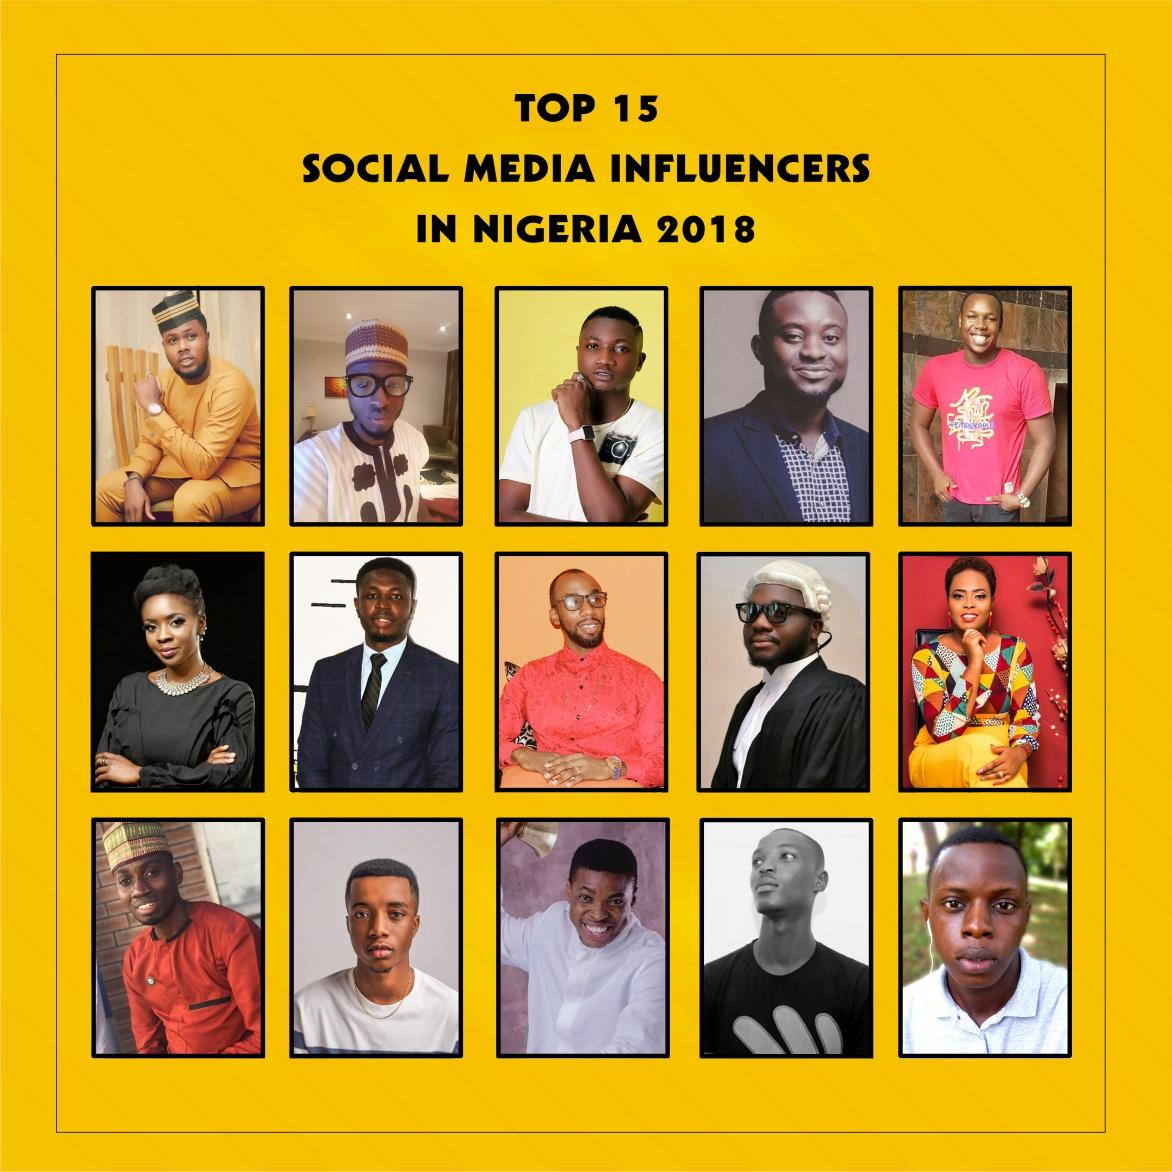 Top%2B15%2BSocial%2BMedia%2BBrand%2BInfluencers%2Bin%2BNigeria%2Bfor%2B2018 - Nigerian youths need  entrepreneurship education mentoring for economic development- Expert